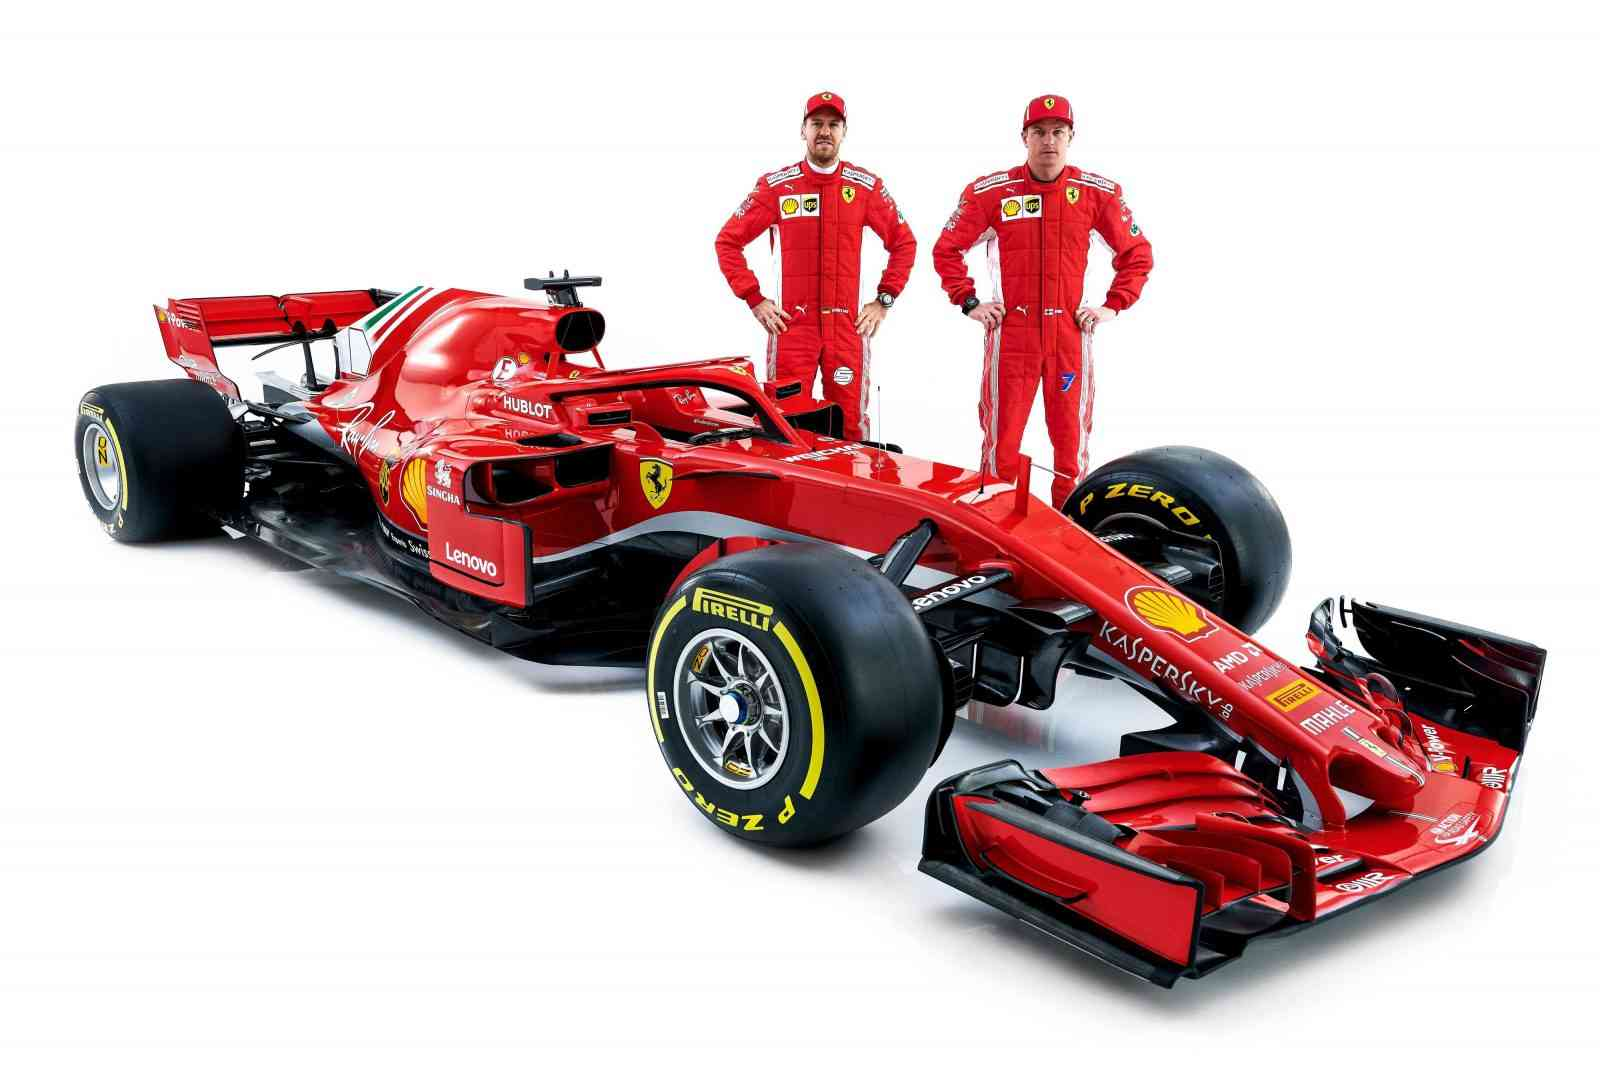 Indy car vs. Formula 1- what are the differences?